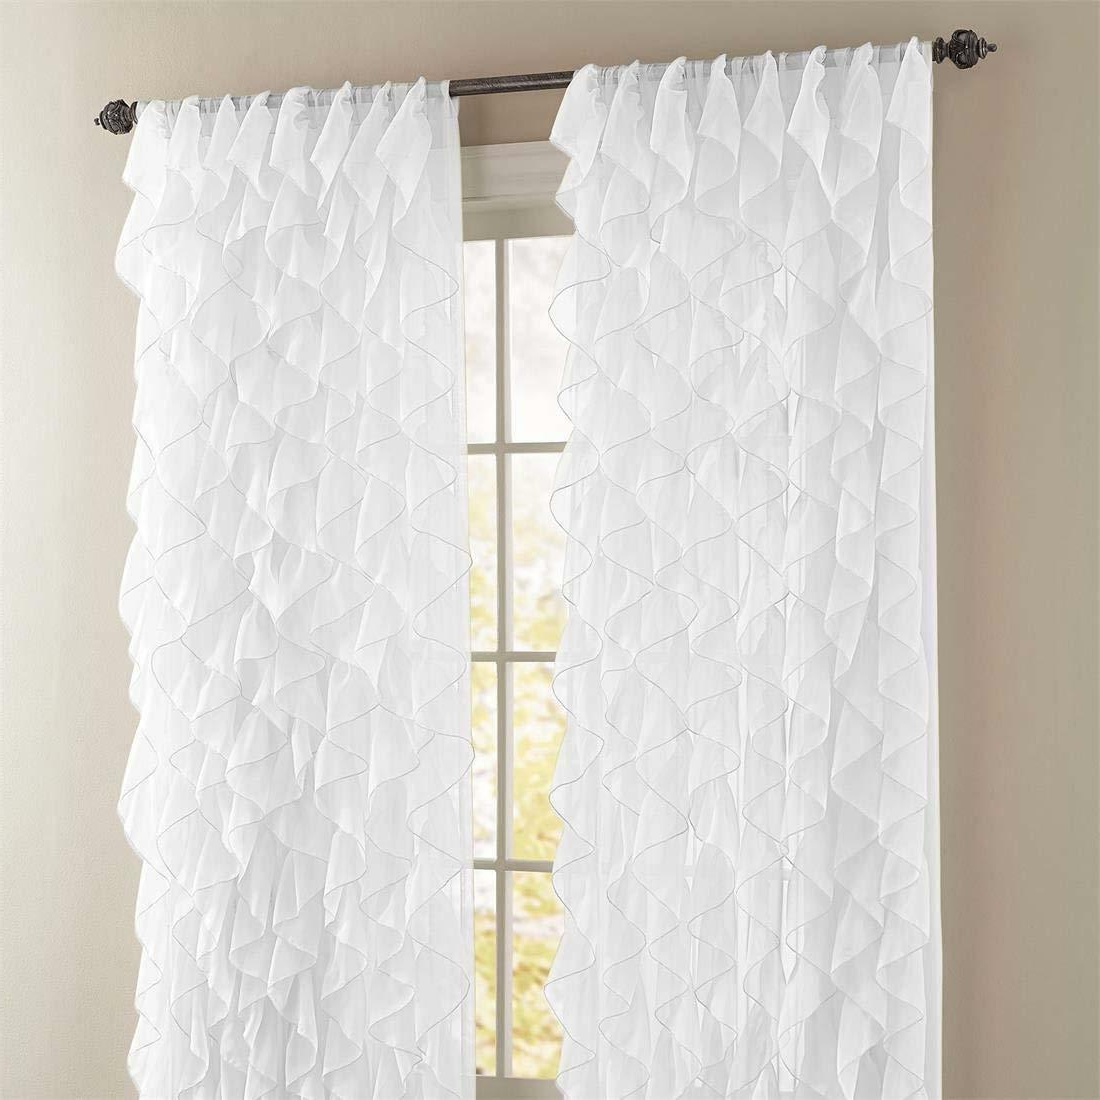 "Sheer Voile Waterfall Ruffled Tier Single Curtain Panels In Fashionable Cascade Ruffled Curtain Panel, 50"" Wide84"" Long, White, Lorraine Home (View 10 of 20)"